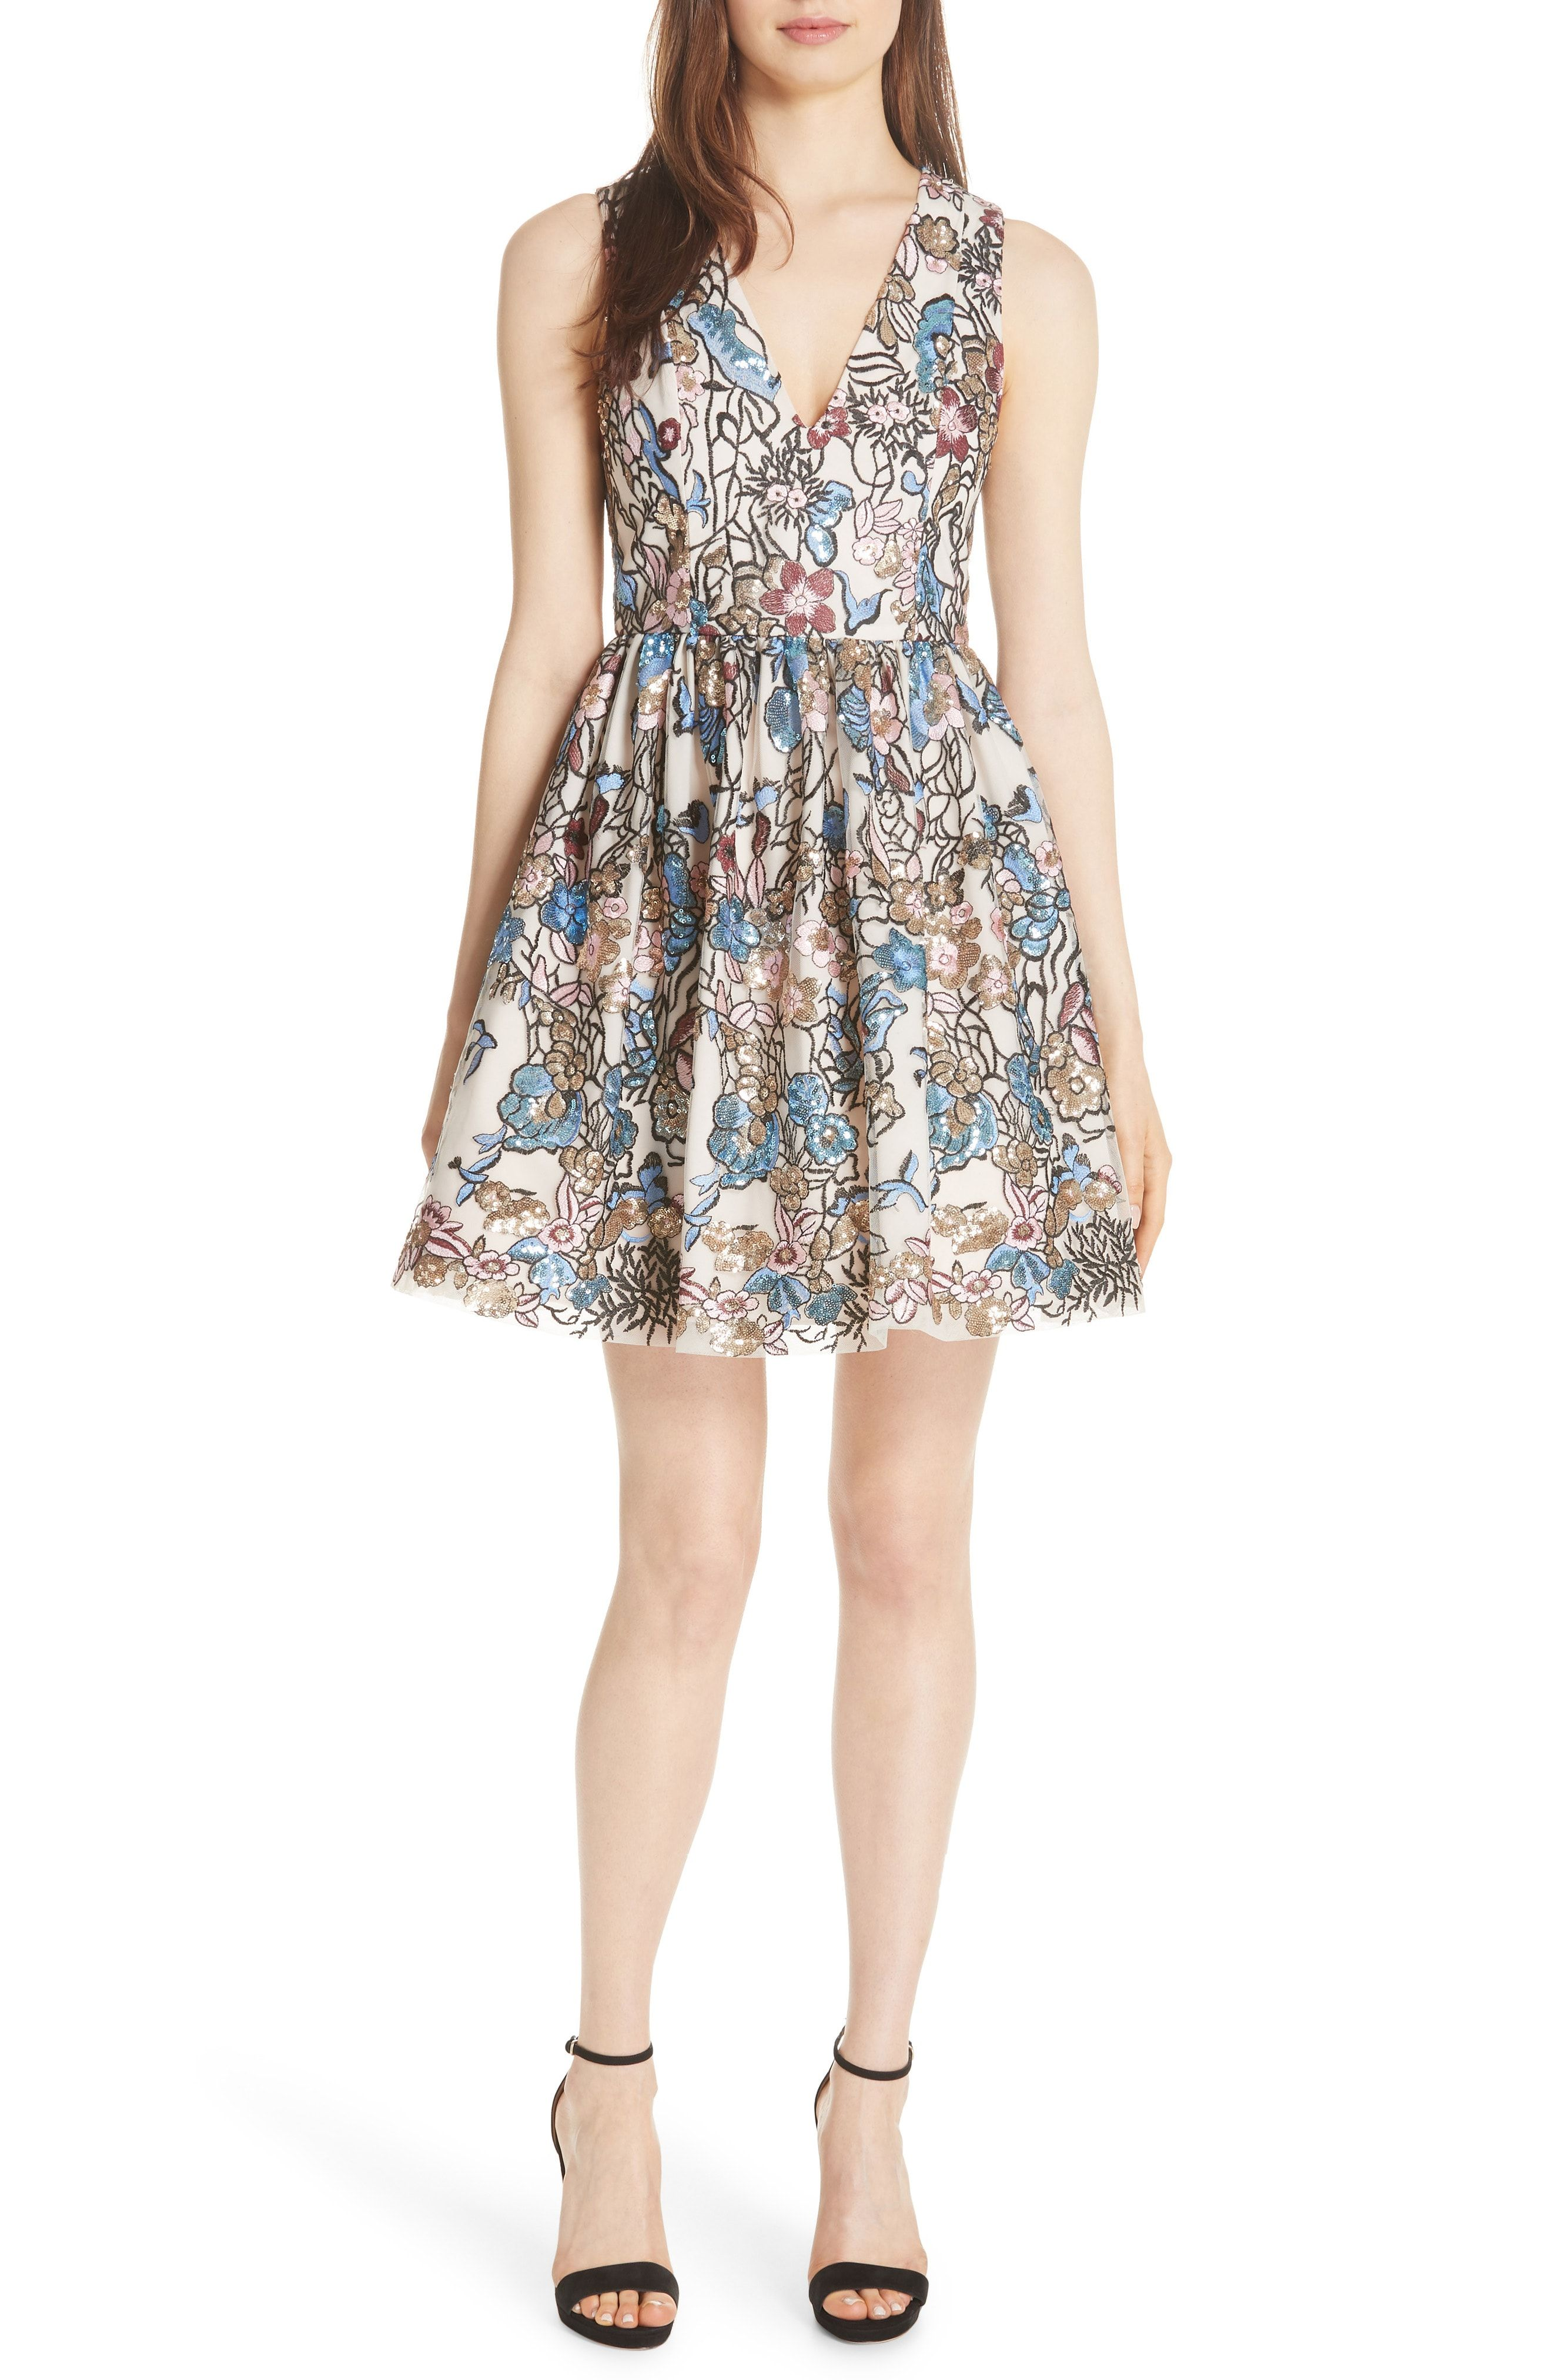 70f44486fc36 New Alice Olivia Becca Embroidered Fit amp  Flare Dress from the popular  stores - all in one. Sku agcc42740xghz87743